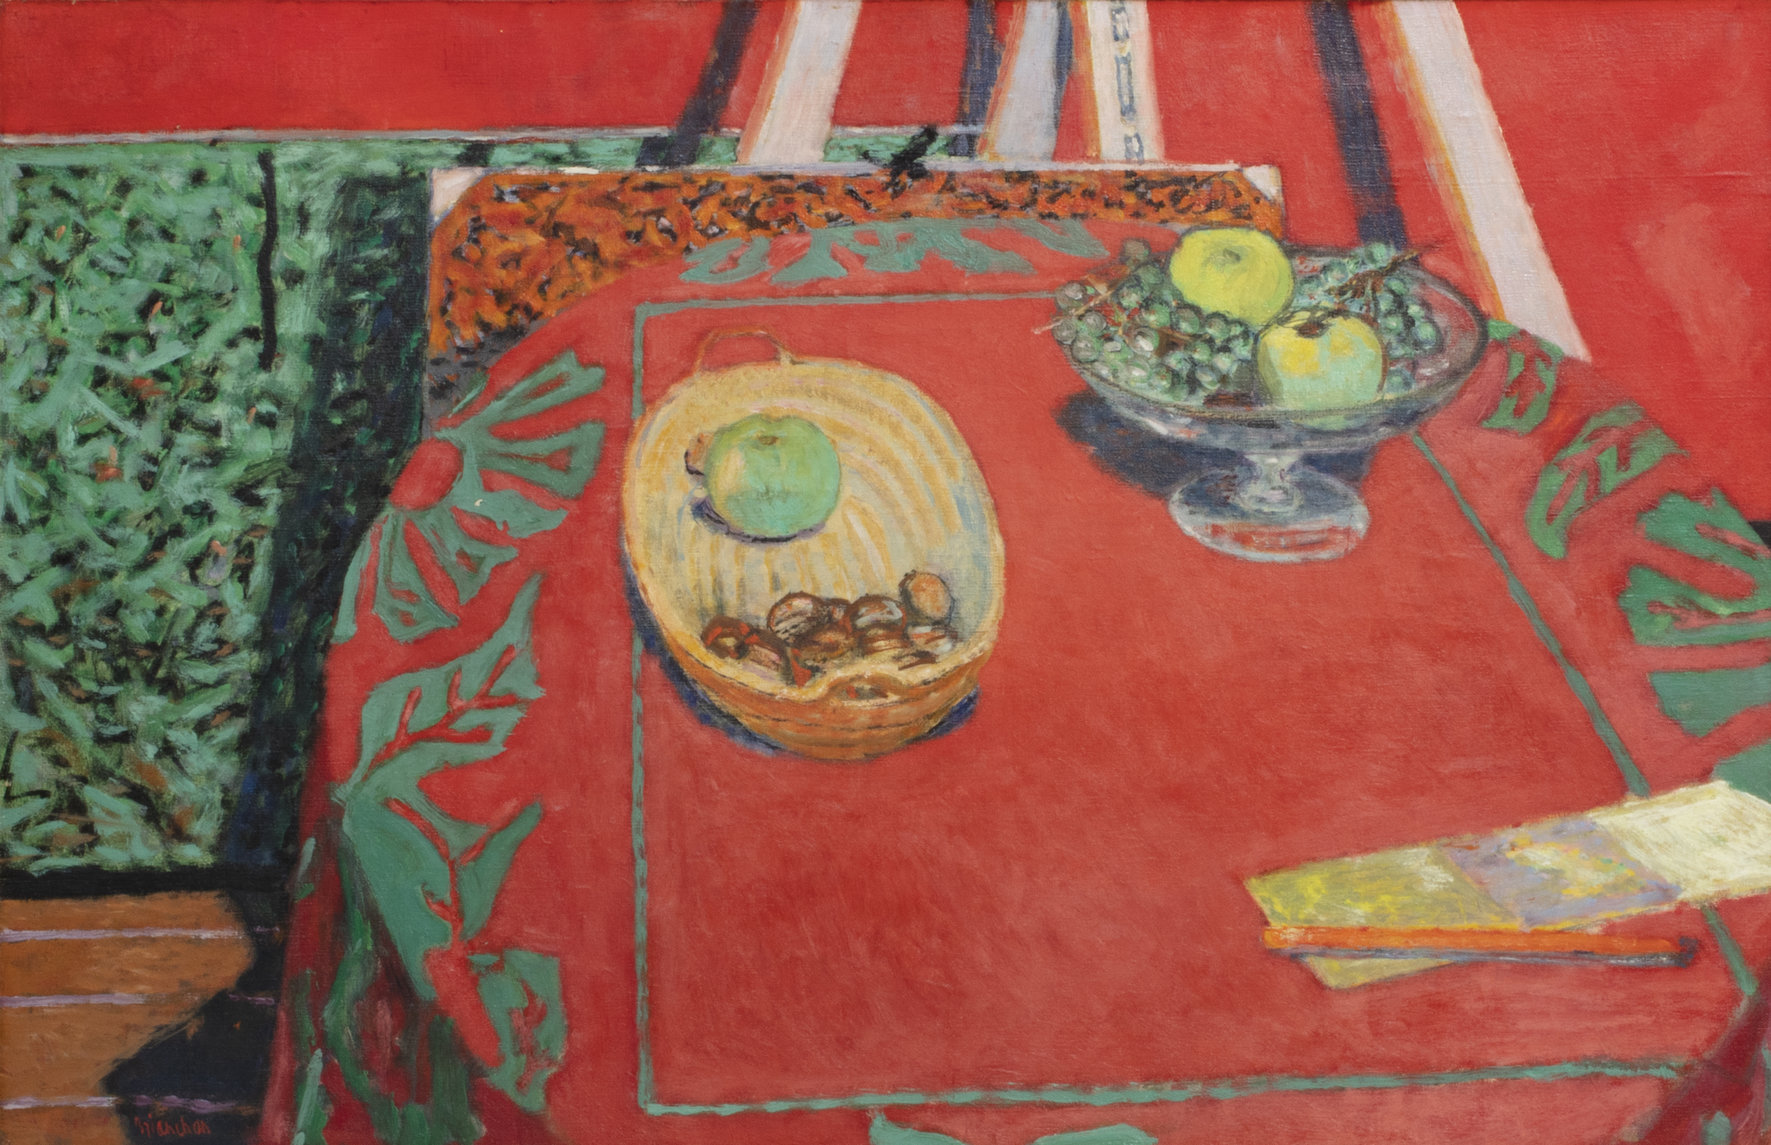 Oil on canvas by Maurice Brianchon (French, 1899-1986), titled Nature Morte au Tapis Rouge, signed 'Brianchon' lower left (est. $10,000-$15,000).